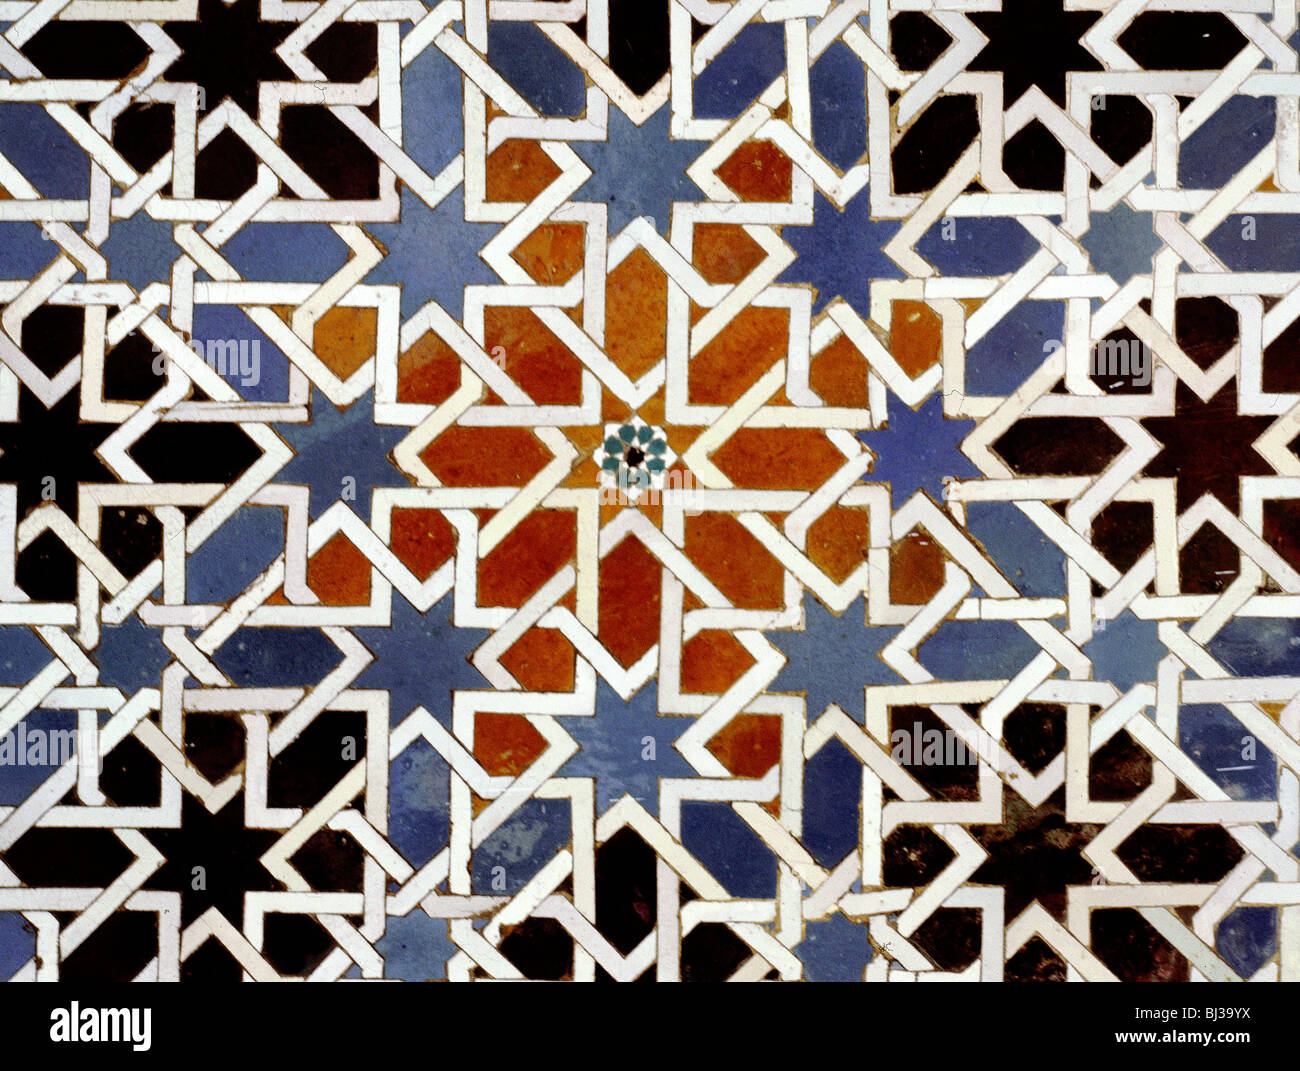 Ceramic tiles from the alcazar of seville andalusia spain 14th ceramic tiles from the alcazar of seville andalusia spain 14th century artist werner forman dailygadgetfo Image collections